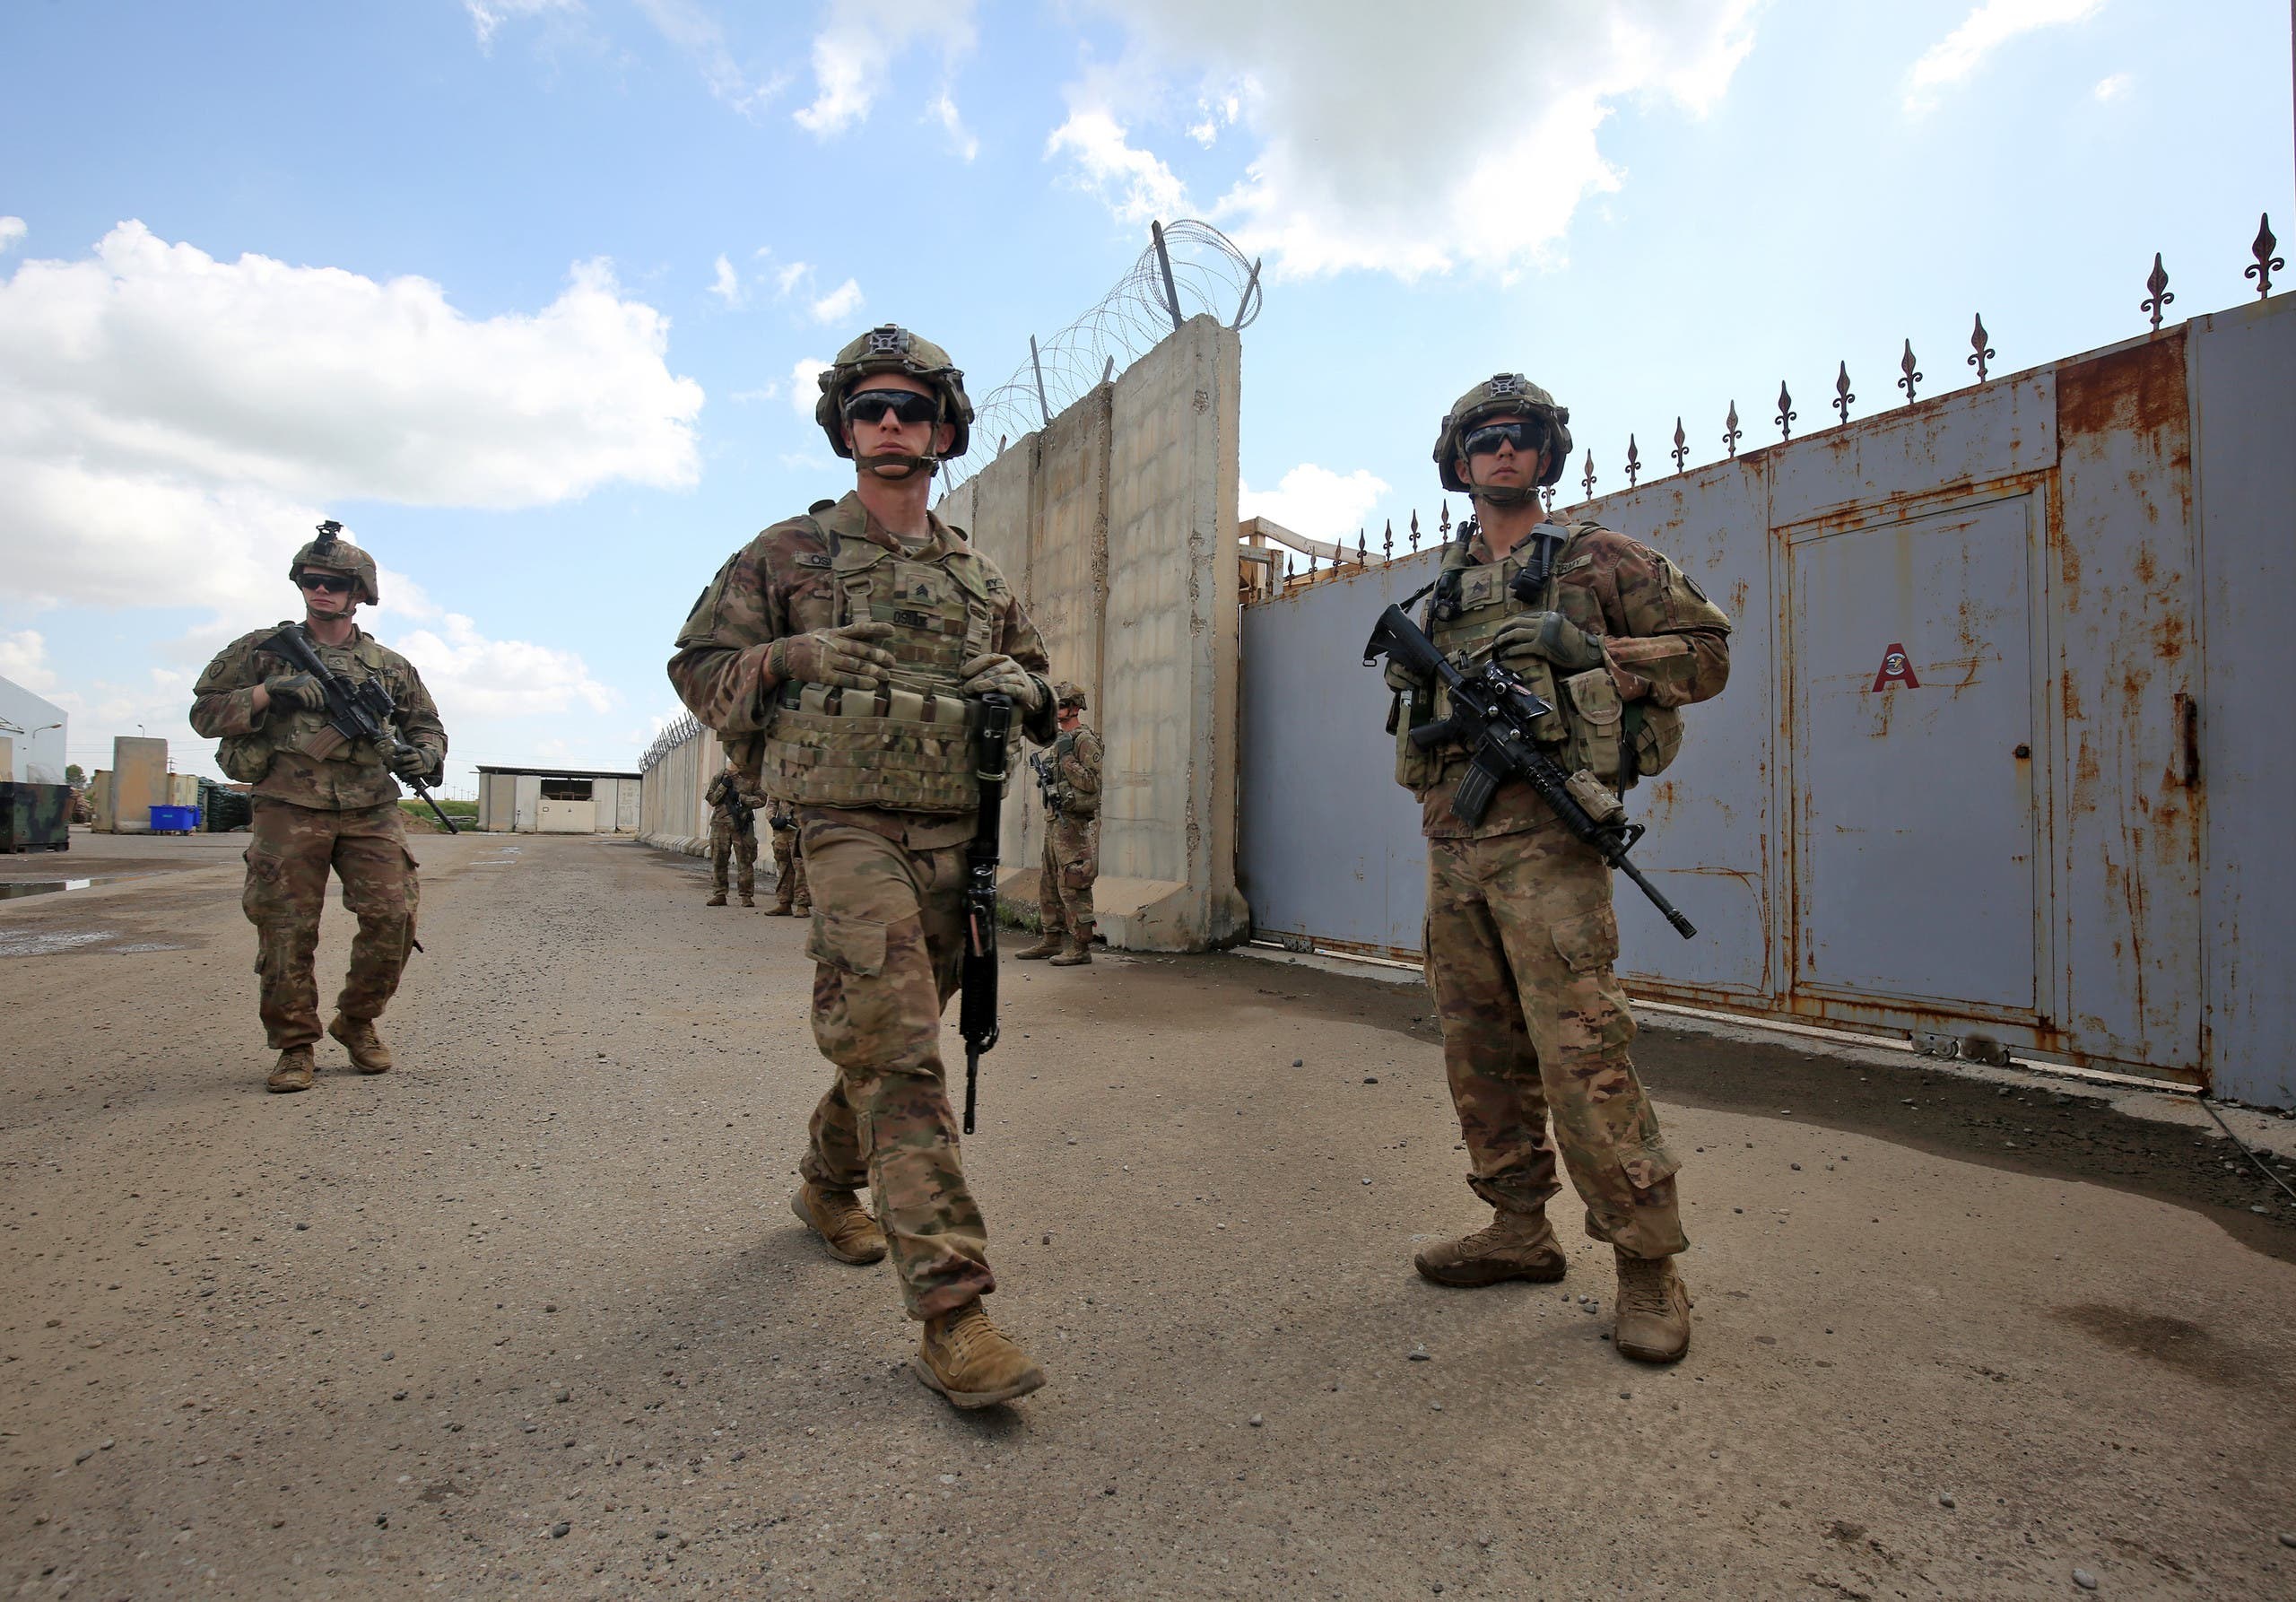 US army soldiers walk around at the K1 Air Base northwest of Kirkuk in northern Iraq before a planned US pullout on March 29, 2020. (File photo: AFP)